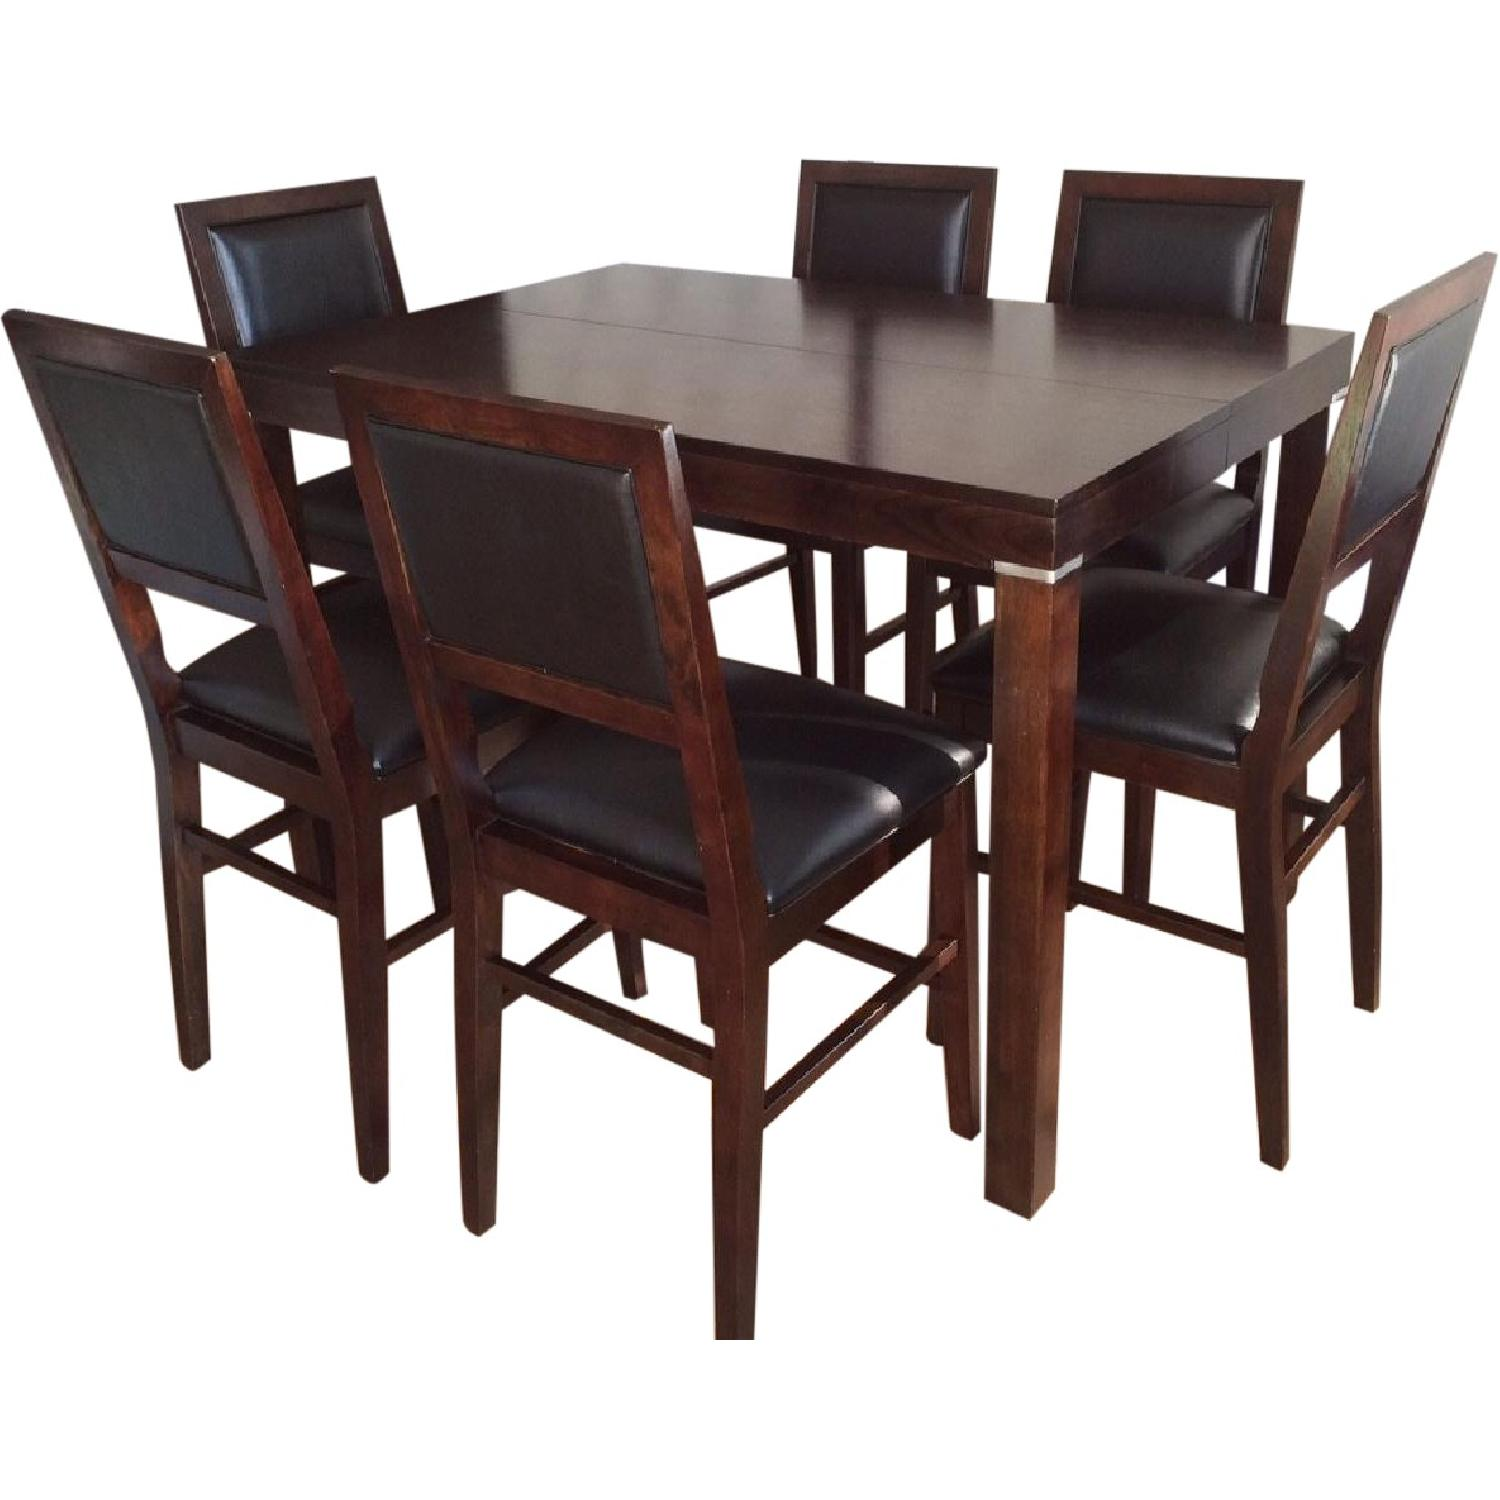 Fortunoff Dining Table w/ 8 Chairs - image-0